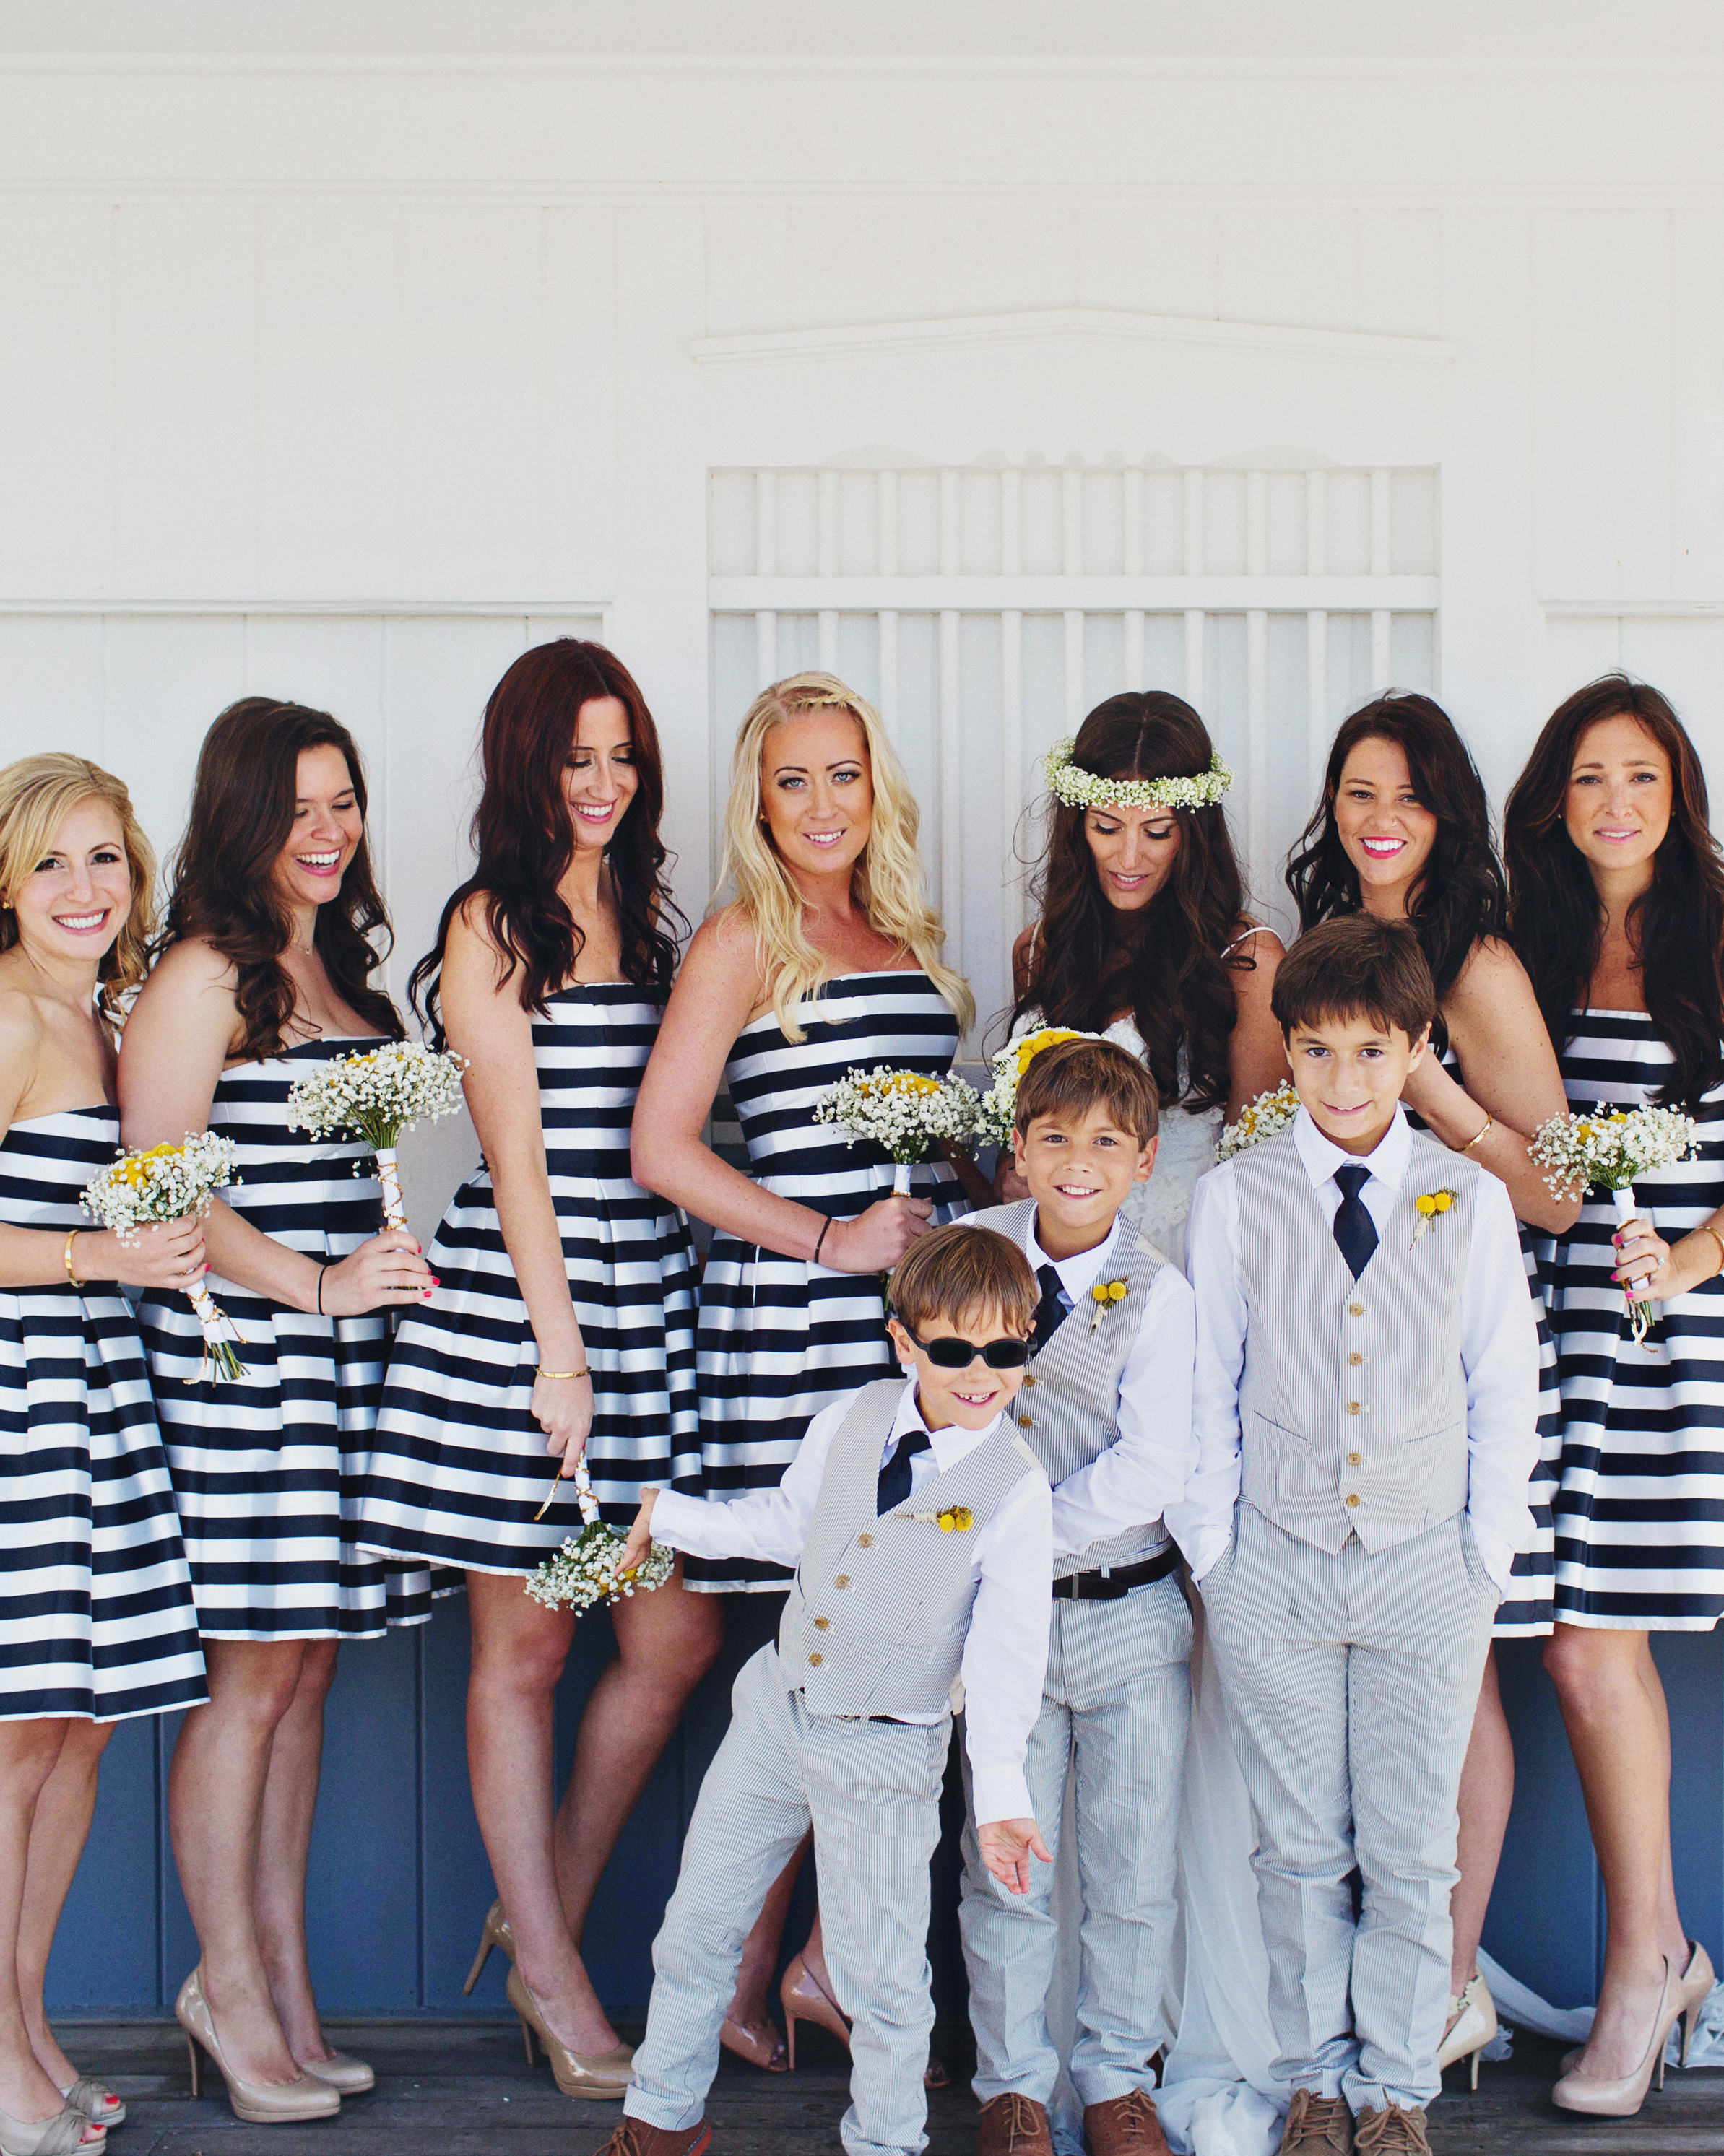 casey-ross-wedding-bridalparty-367-s111514-1114.jpg